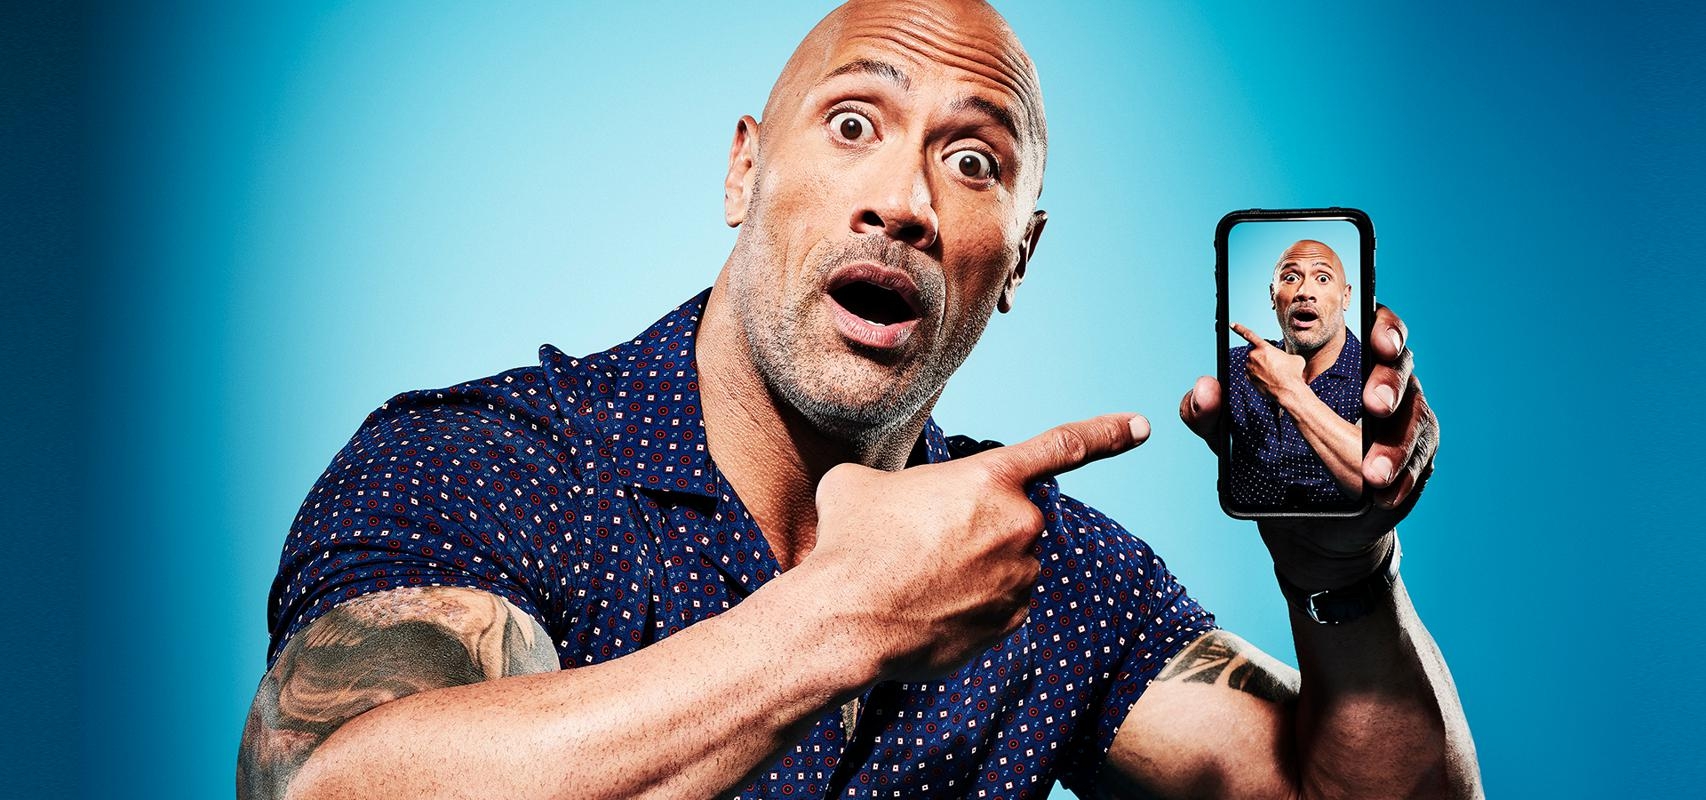 Why The Rock's Social Media Muscle Made Him Hollywood's Highest-Paid Actor